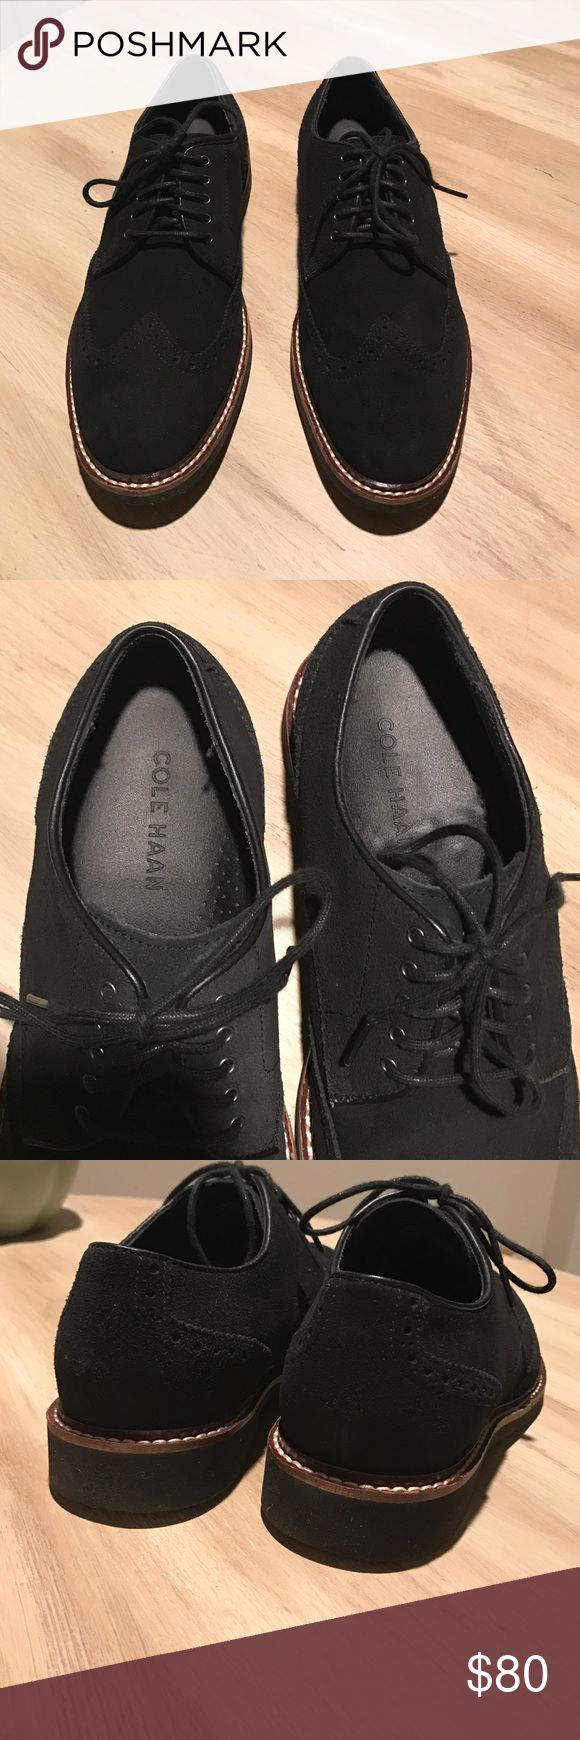 Cole Haan suede wing tip oxford dress shoes Cole Haan loafers. Suede black wing tip oxford size 7 men. Never been worn. Cole Haan Shoes Flats & Loafers